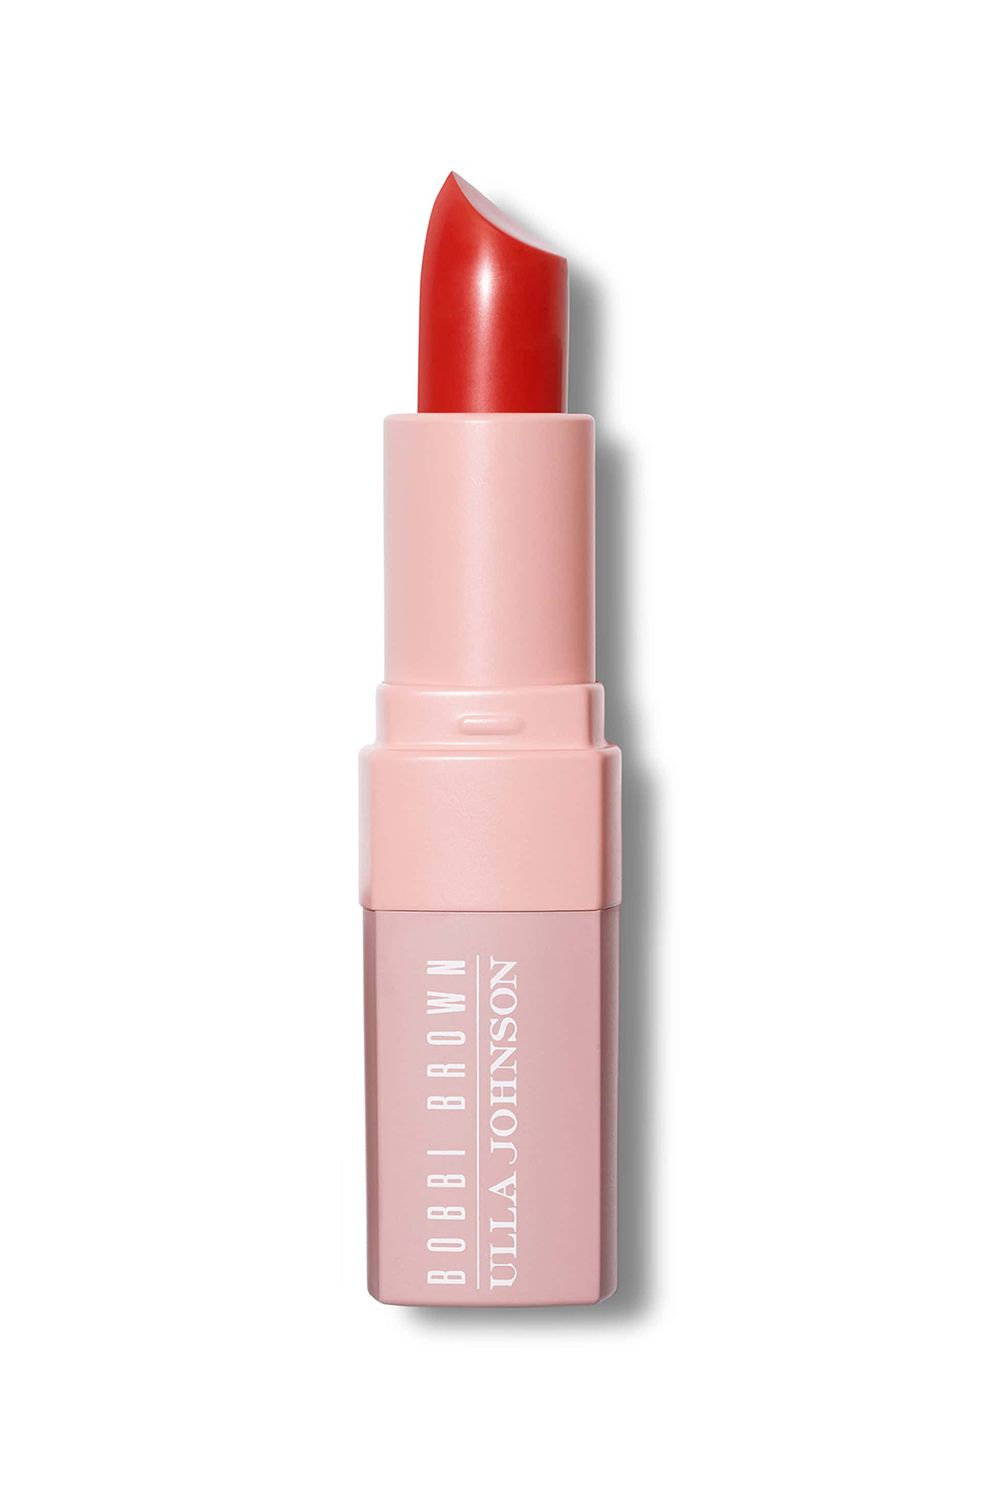 Orangey Red Bobbi Brown X Ulla Johnson Crushed Lip Color in Lou Lou, $29 SHOP IT When bright orange and red tones collide, it creates a beautiful color story, reminiscent of a spring sunset. This leaves a bold wash of color on your lips.